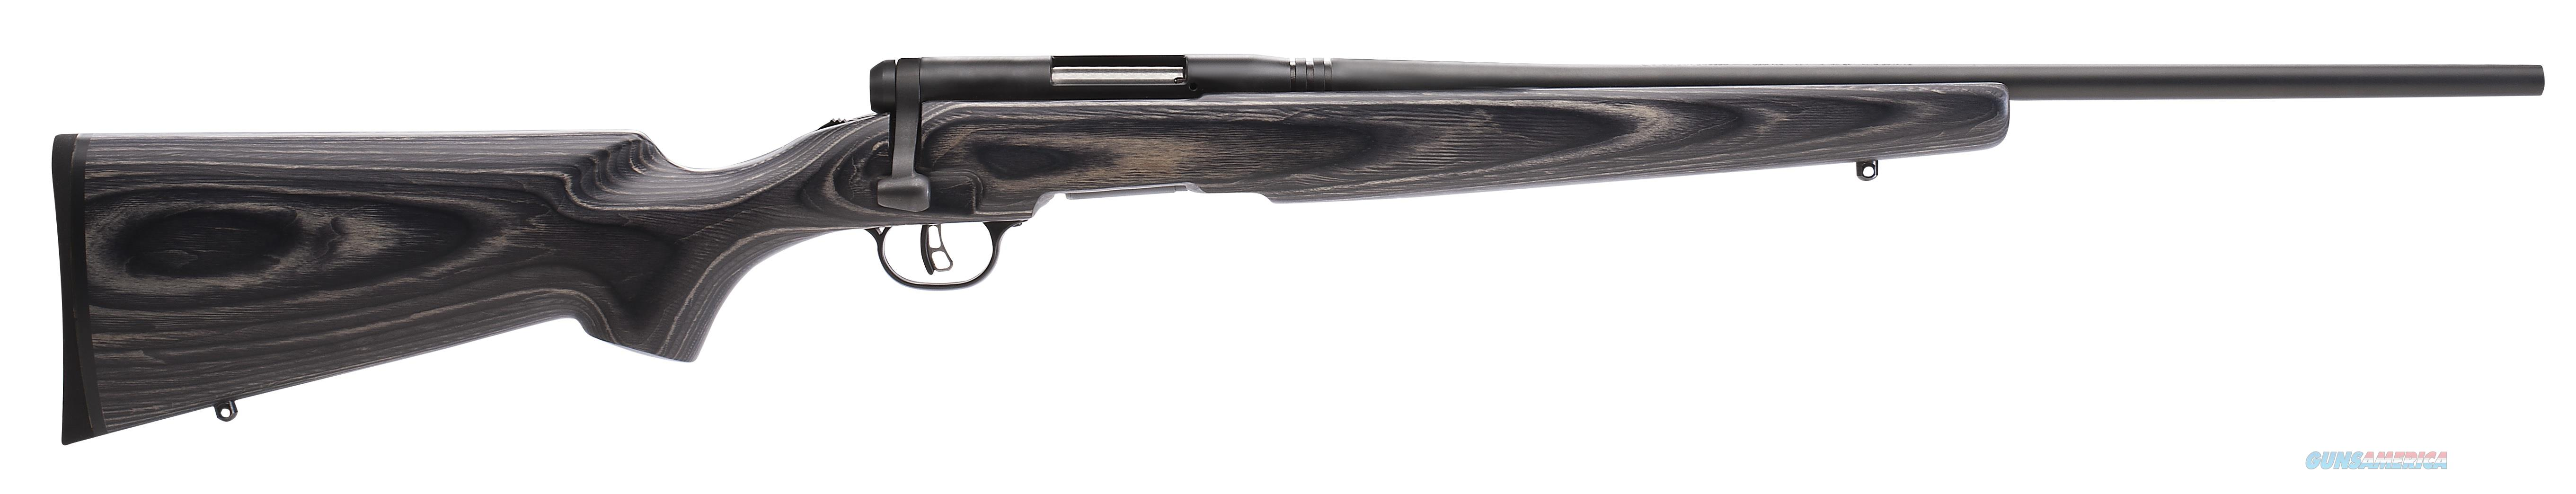 "Savage 17 SS BMAG SPORTER .17 WSM 22"" 8 RDS 96971   Guns > Rifles > Savage Rifles > Accutrigger Models > Sporting"